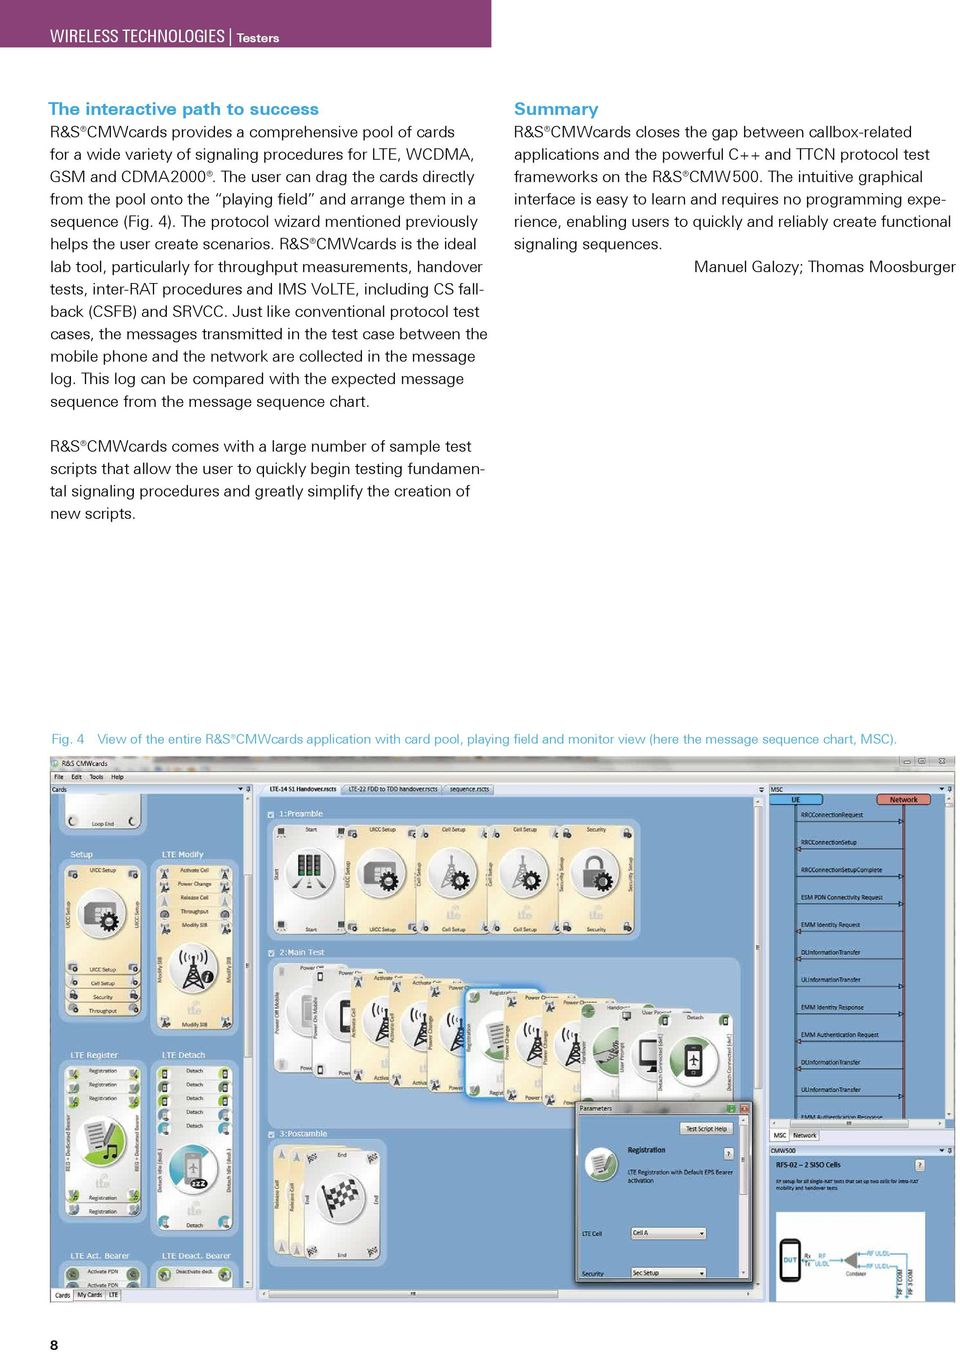 R&S CMWcards is the ideal lab tool, particularly for throughput measurements, handover tests, inter-rat procedures and IMS VoLTE, including CS fallback (CSFB) and SRVCC.